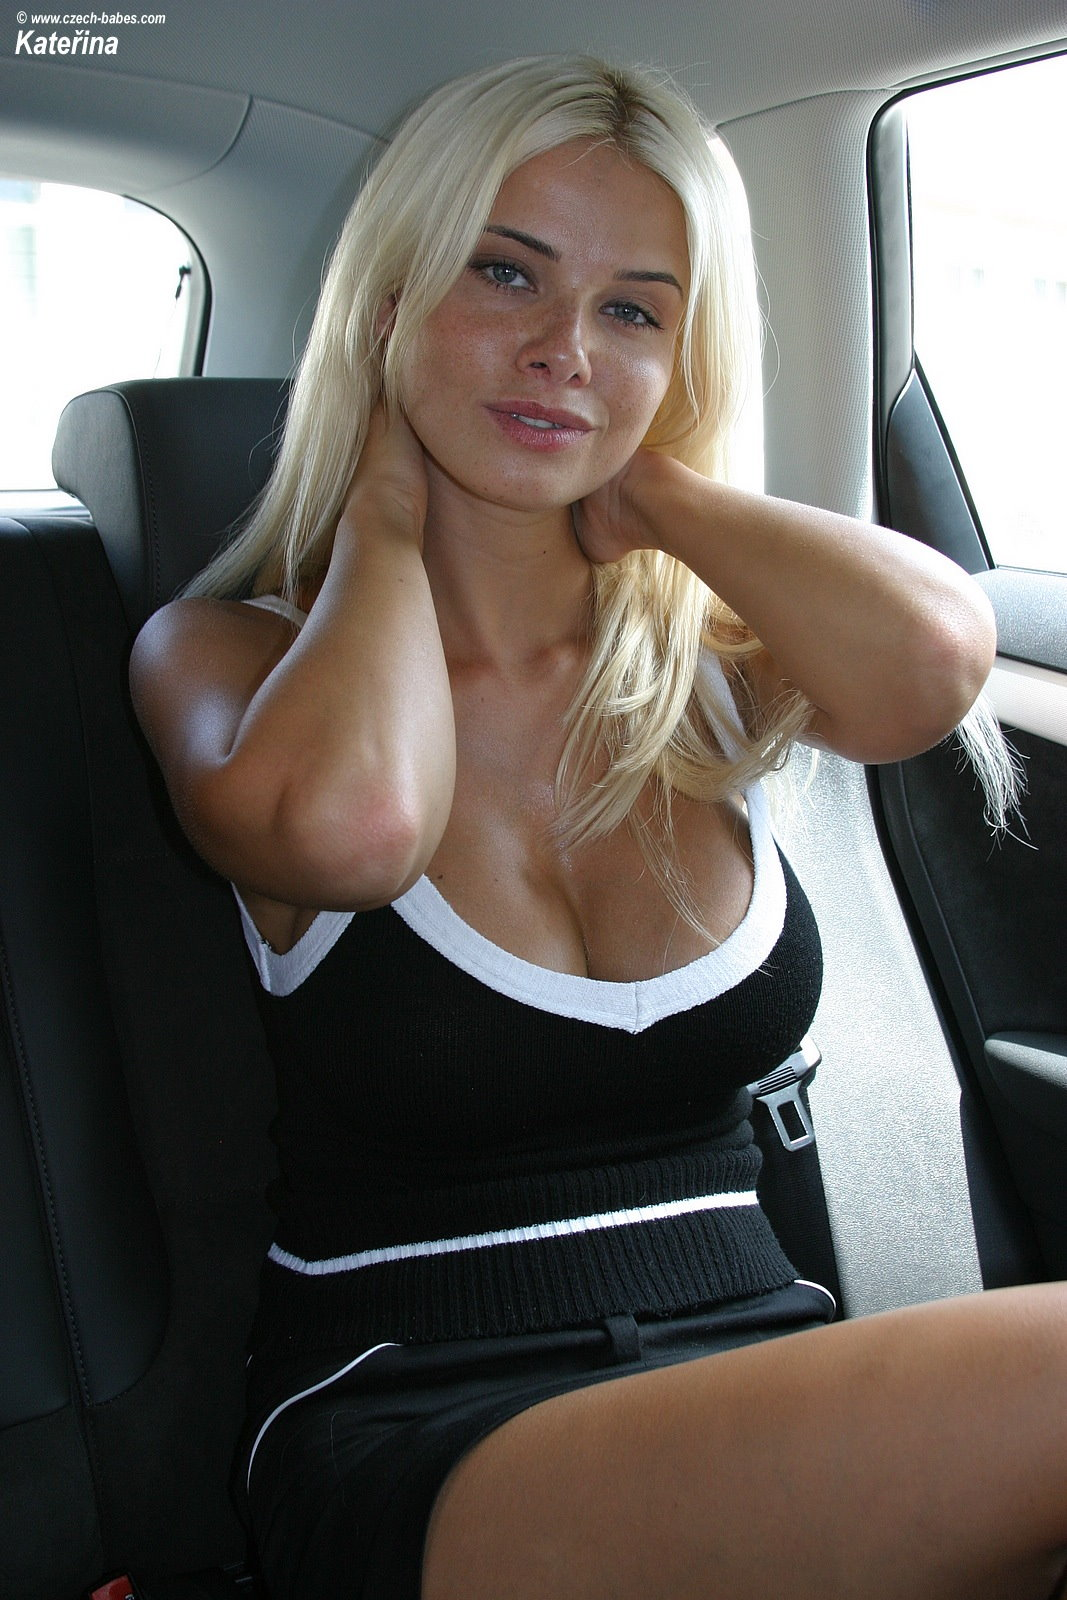 katerina-boobs-car-nude-czech-babes-06